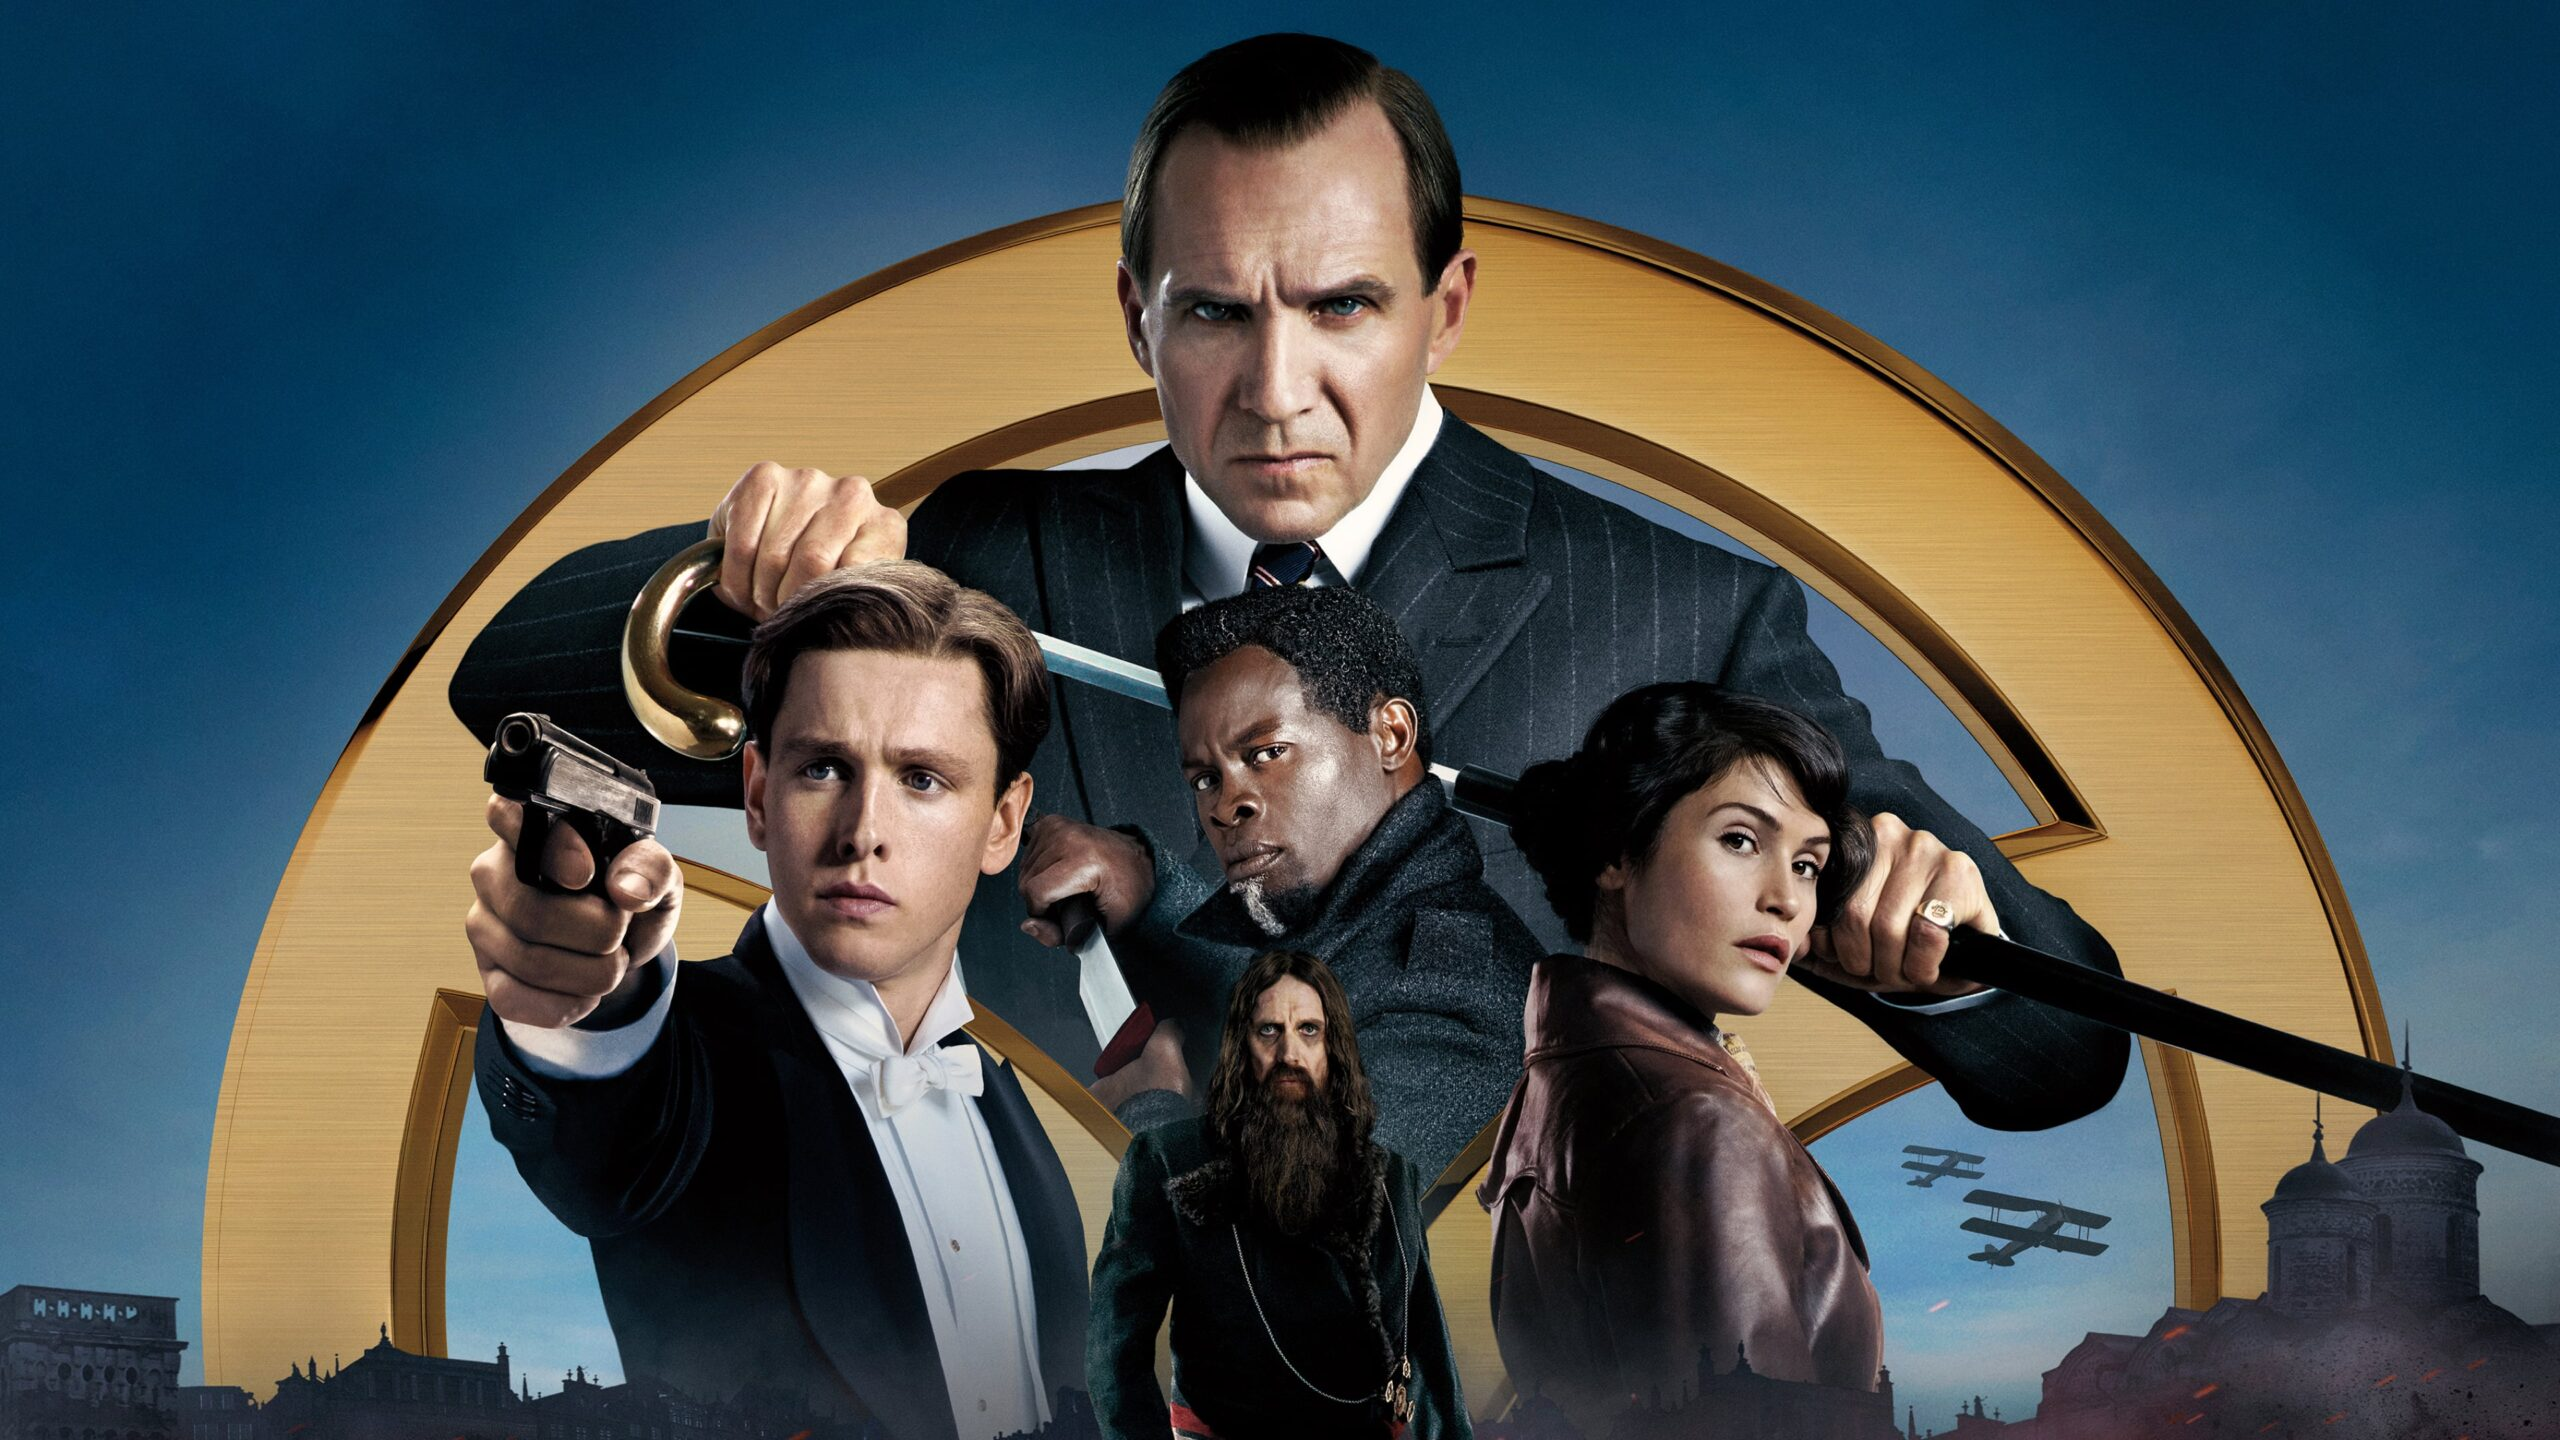 The King's Man Movie Streaming Online